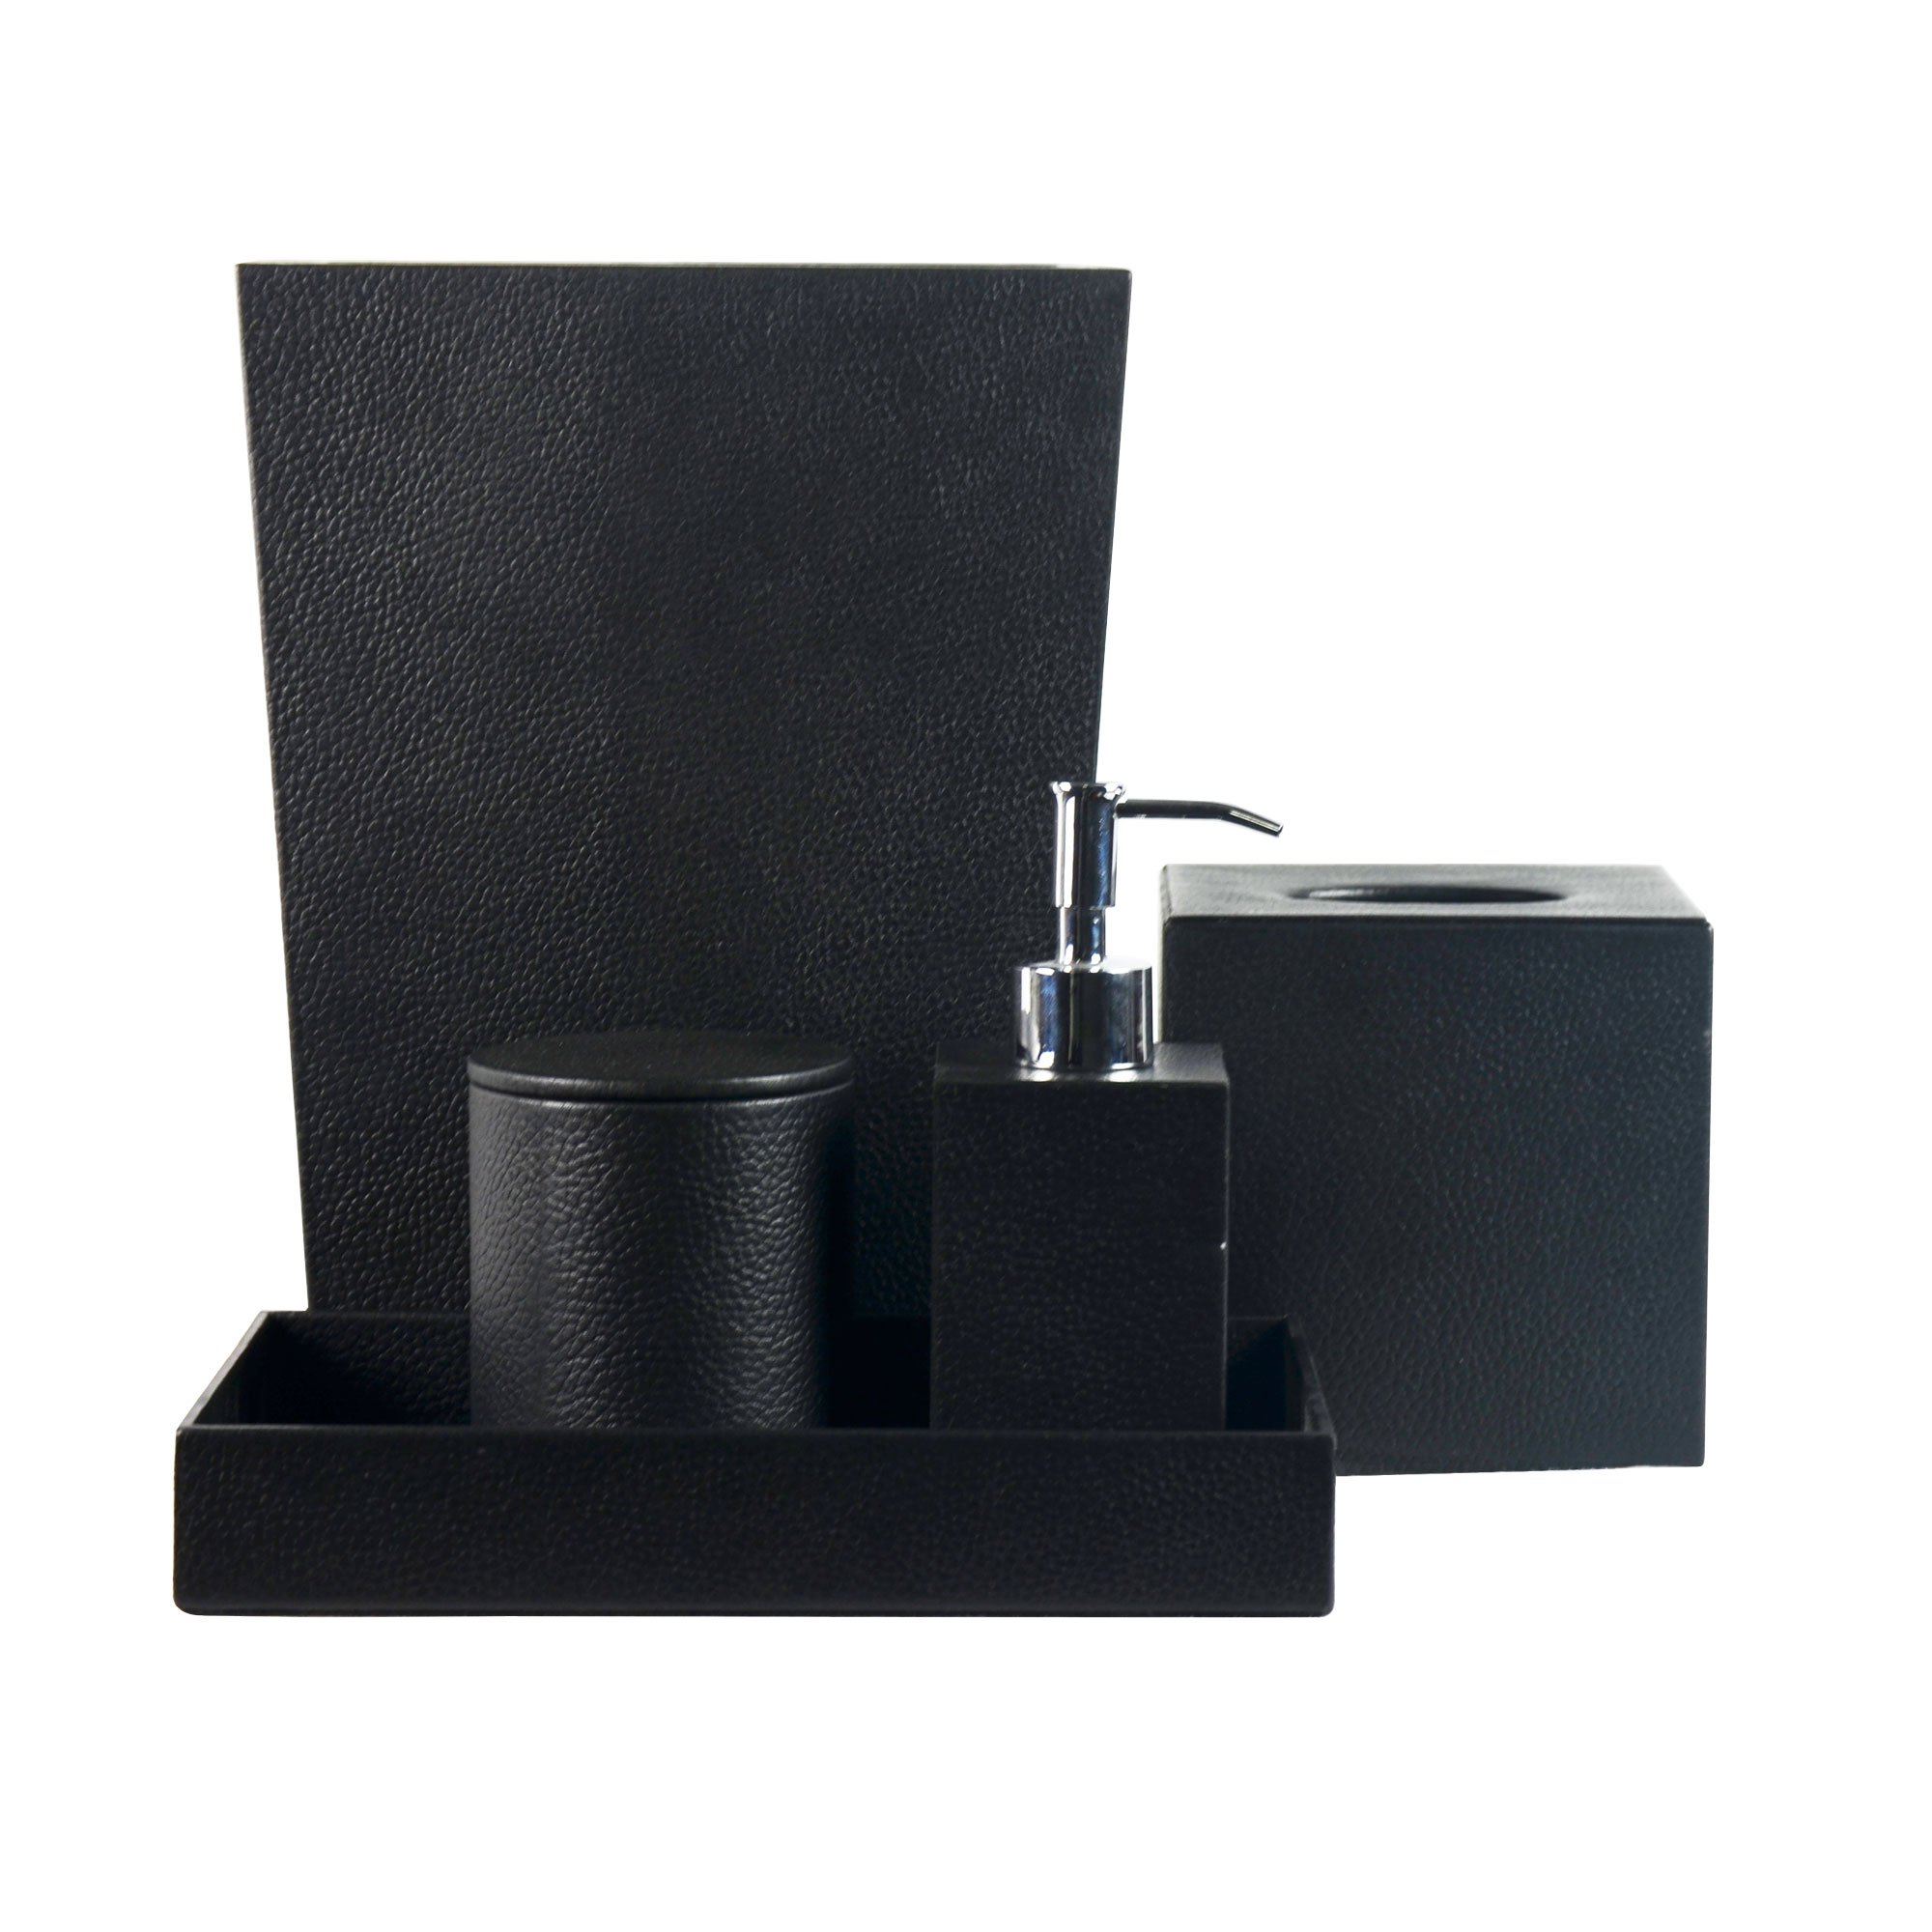 Genuine Leather 5-Piece Bath Set, Black, Shower and Bathroom Accessory